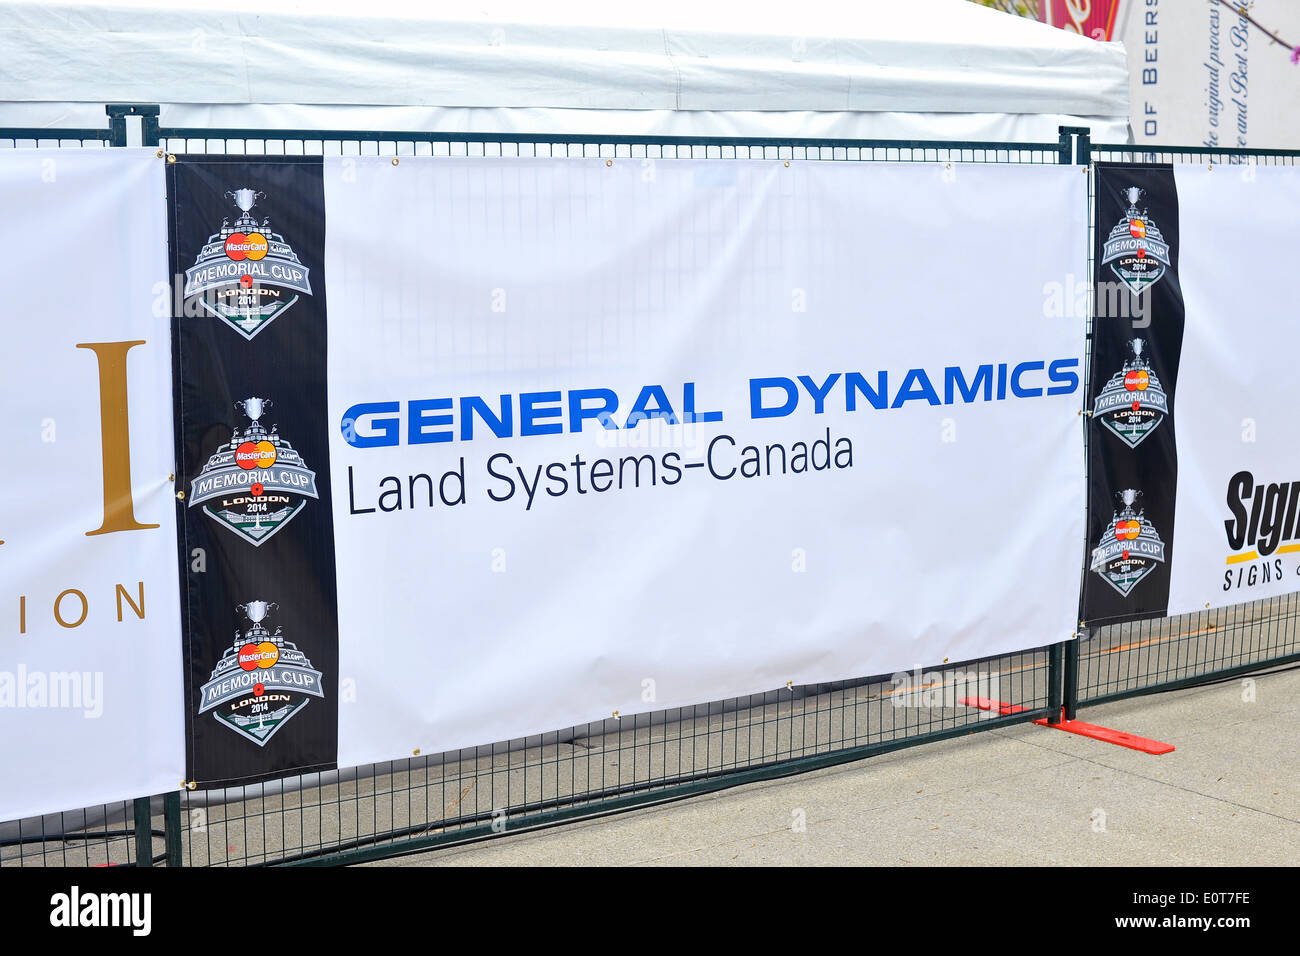 A General Dynamics Land Systems Canada poster. - Stock Image